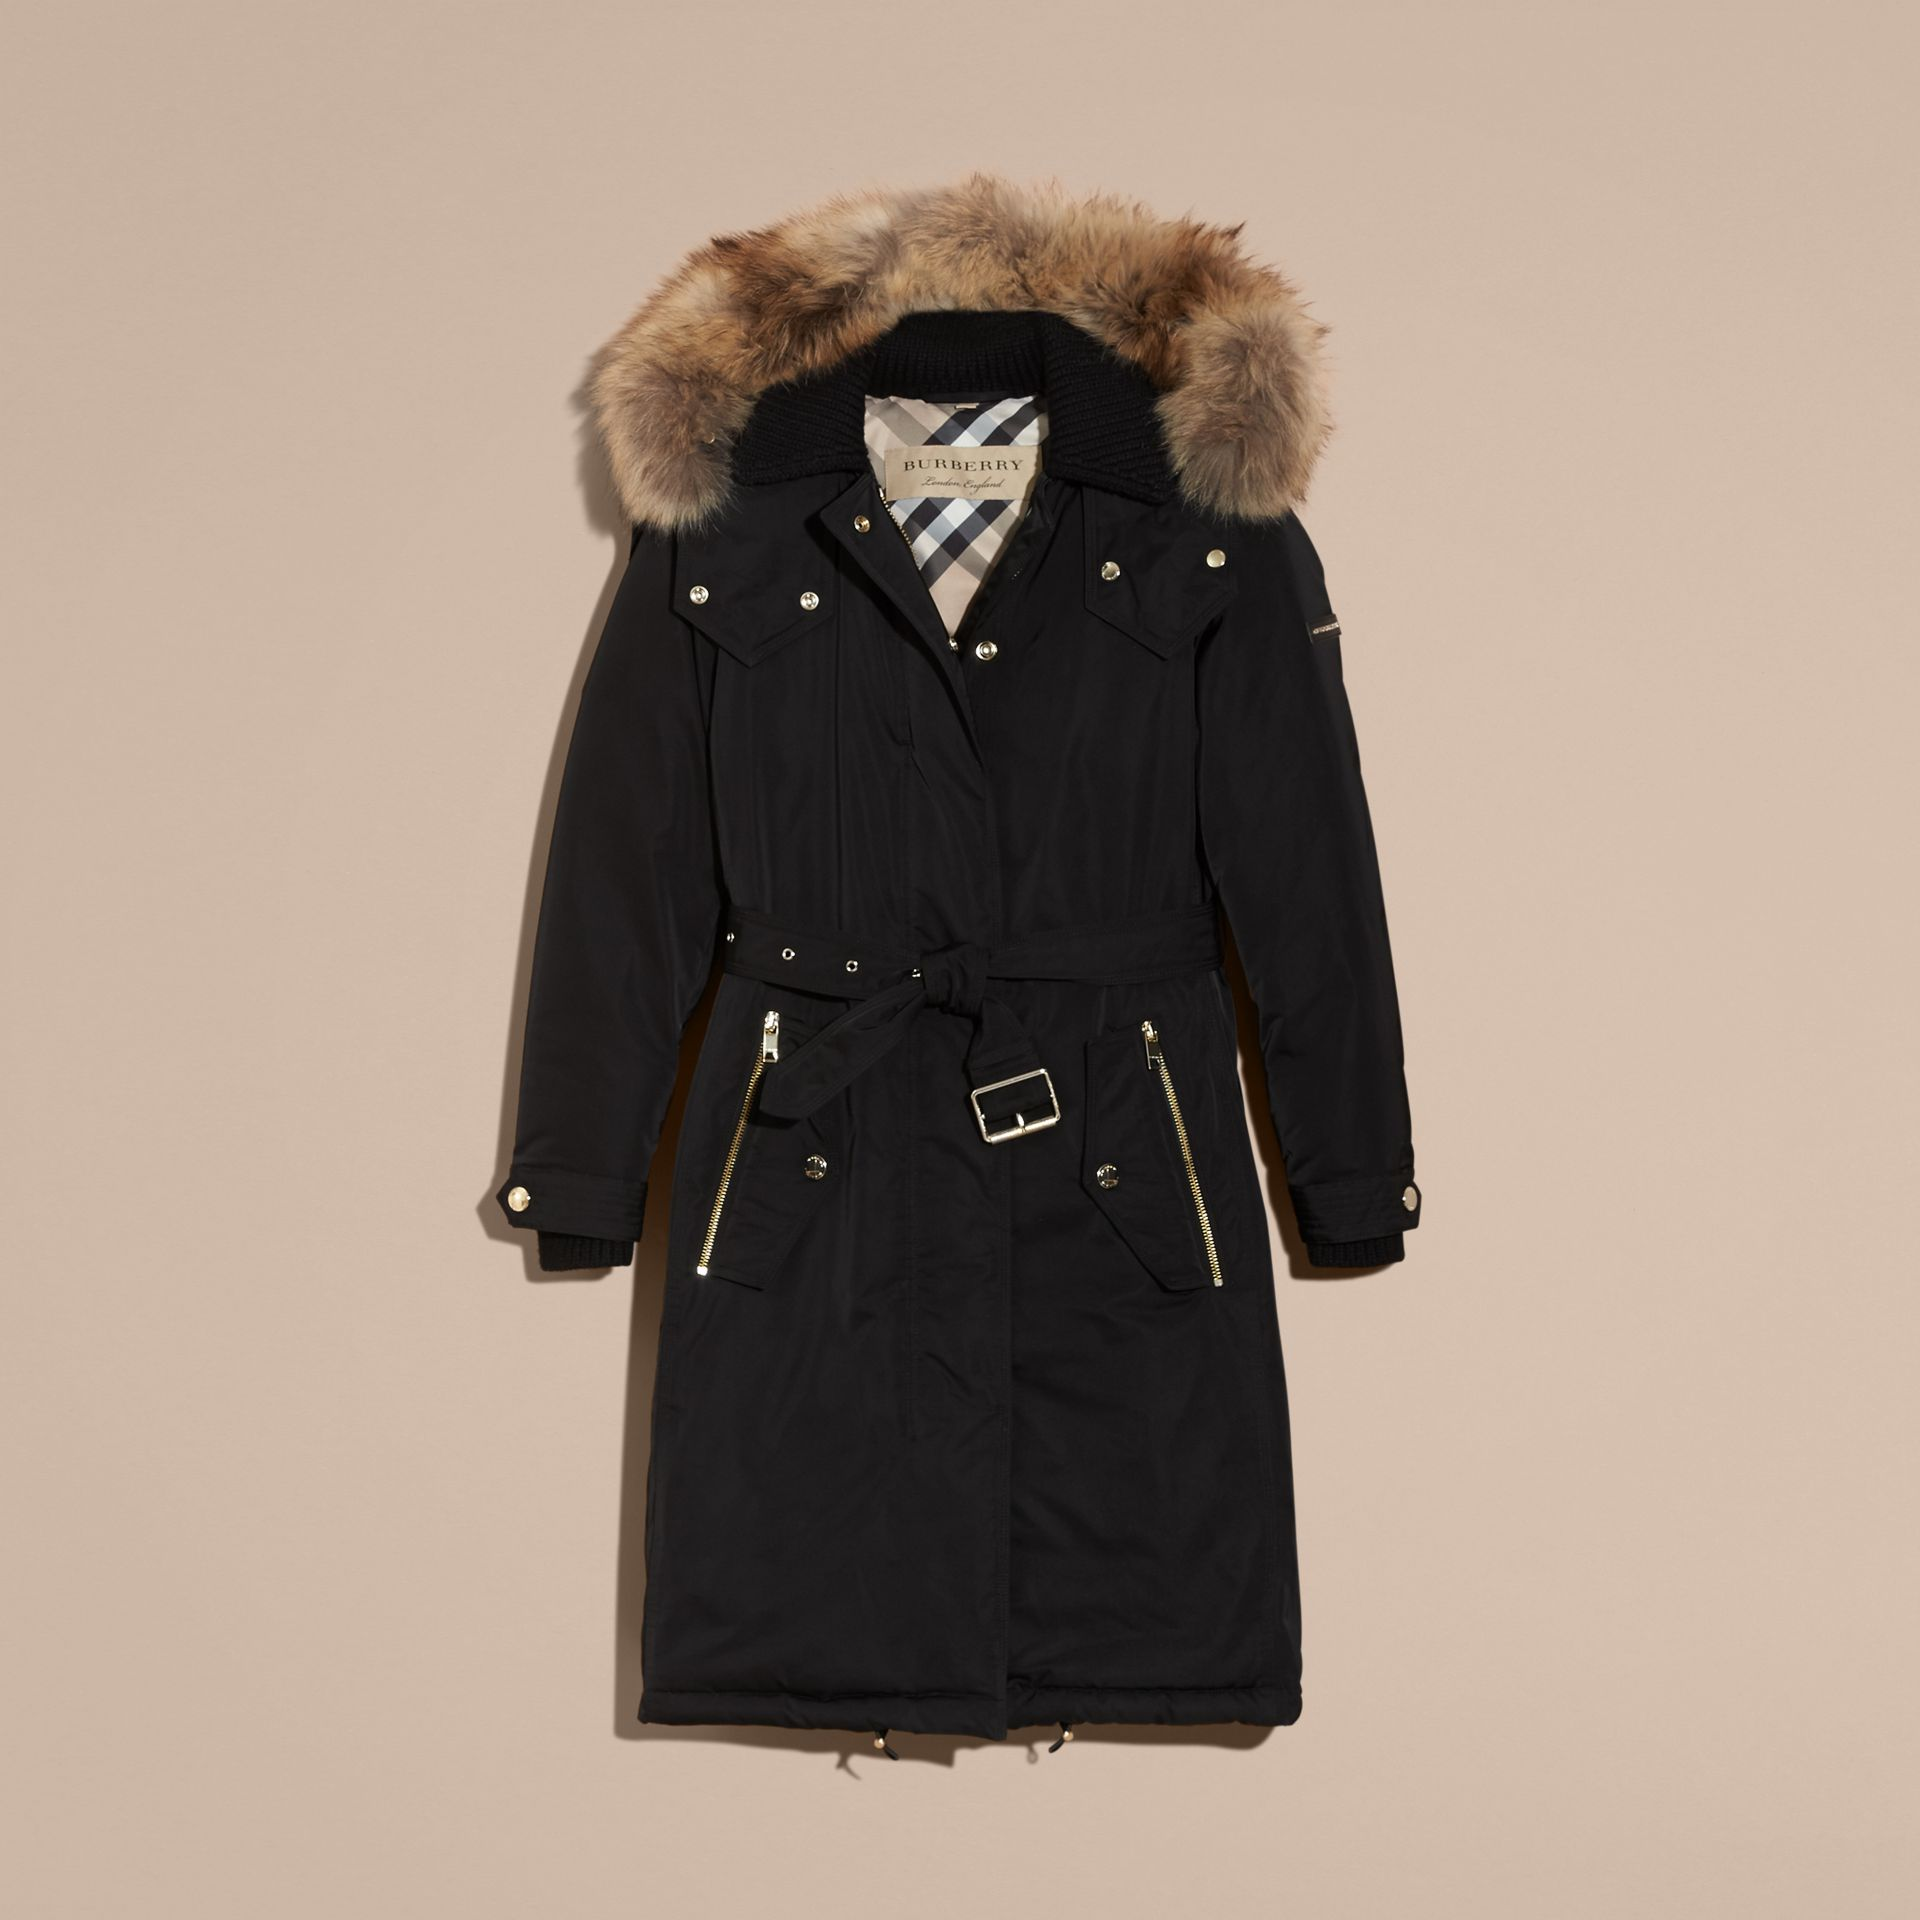 Down-filled Parka Coat with Detachable Fur Trim in Black - Women | Burberry - gallery image 3